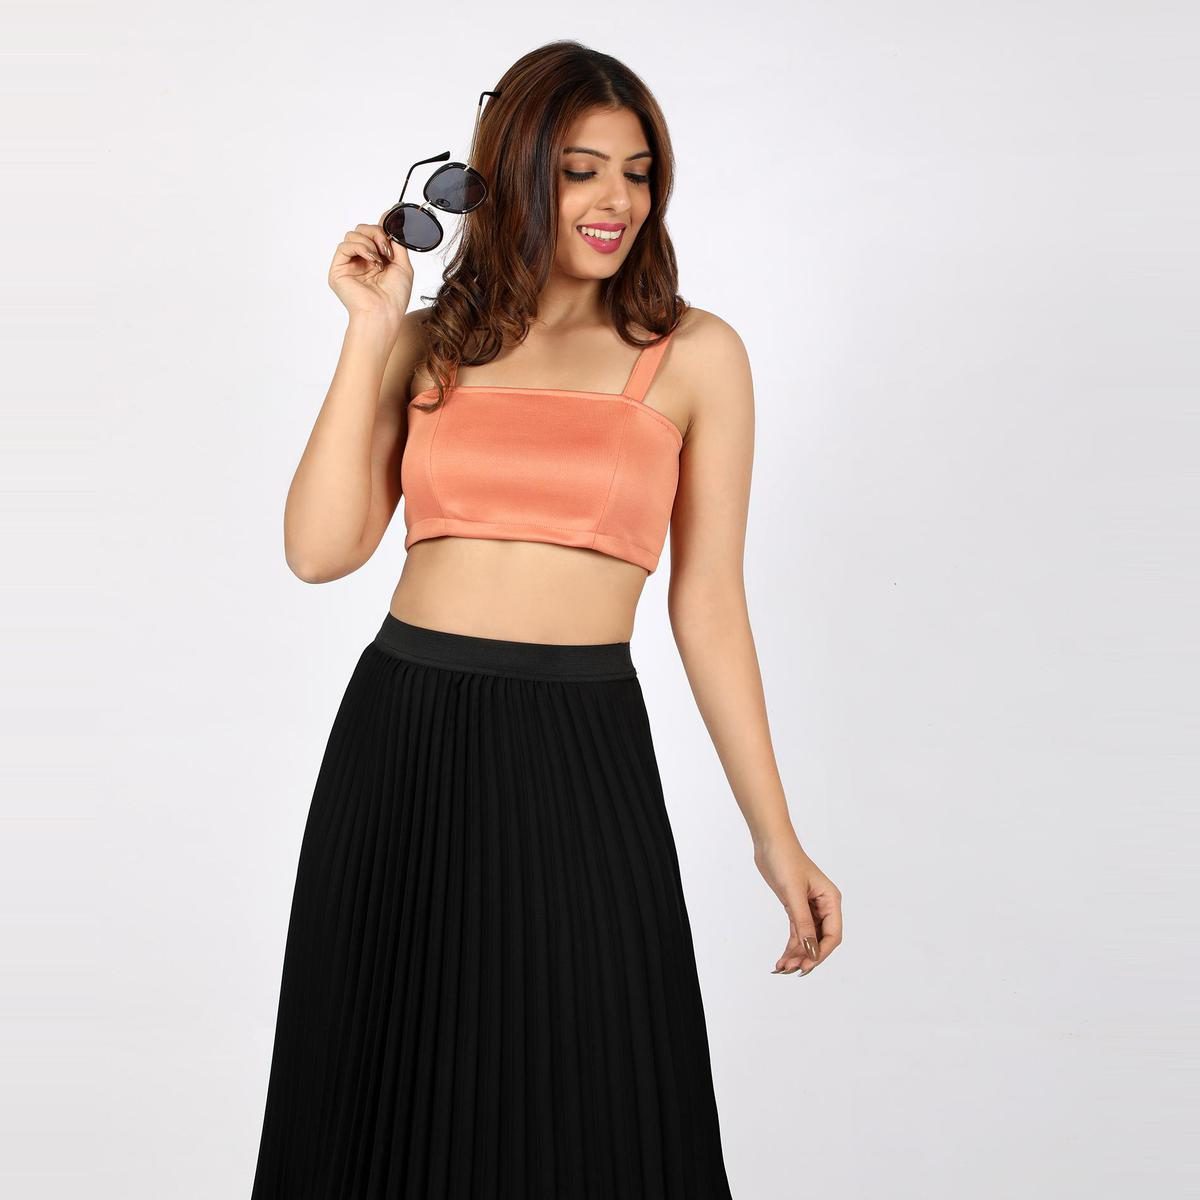 Chimpaaanzee - Peach Colored Casual Polyester Top